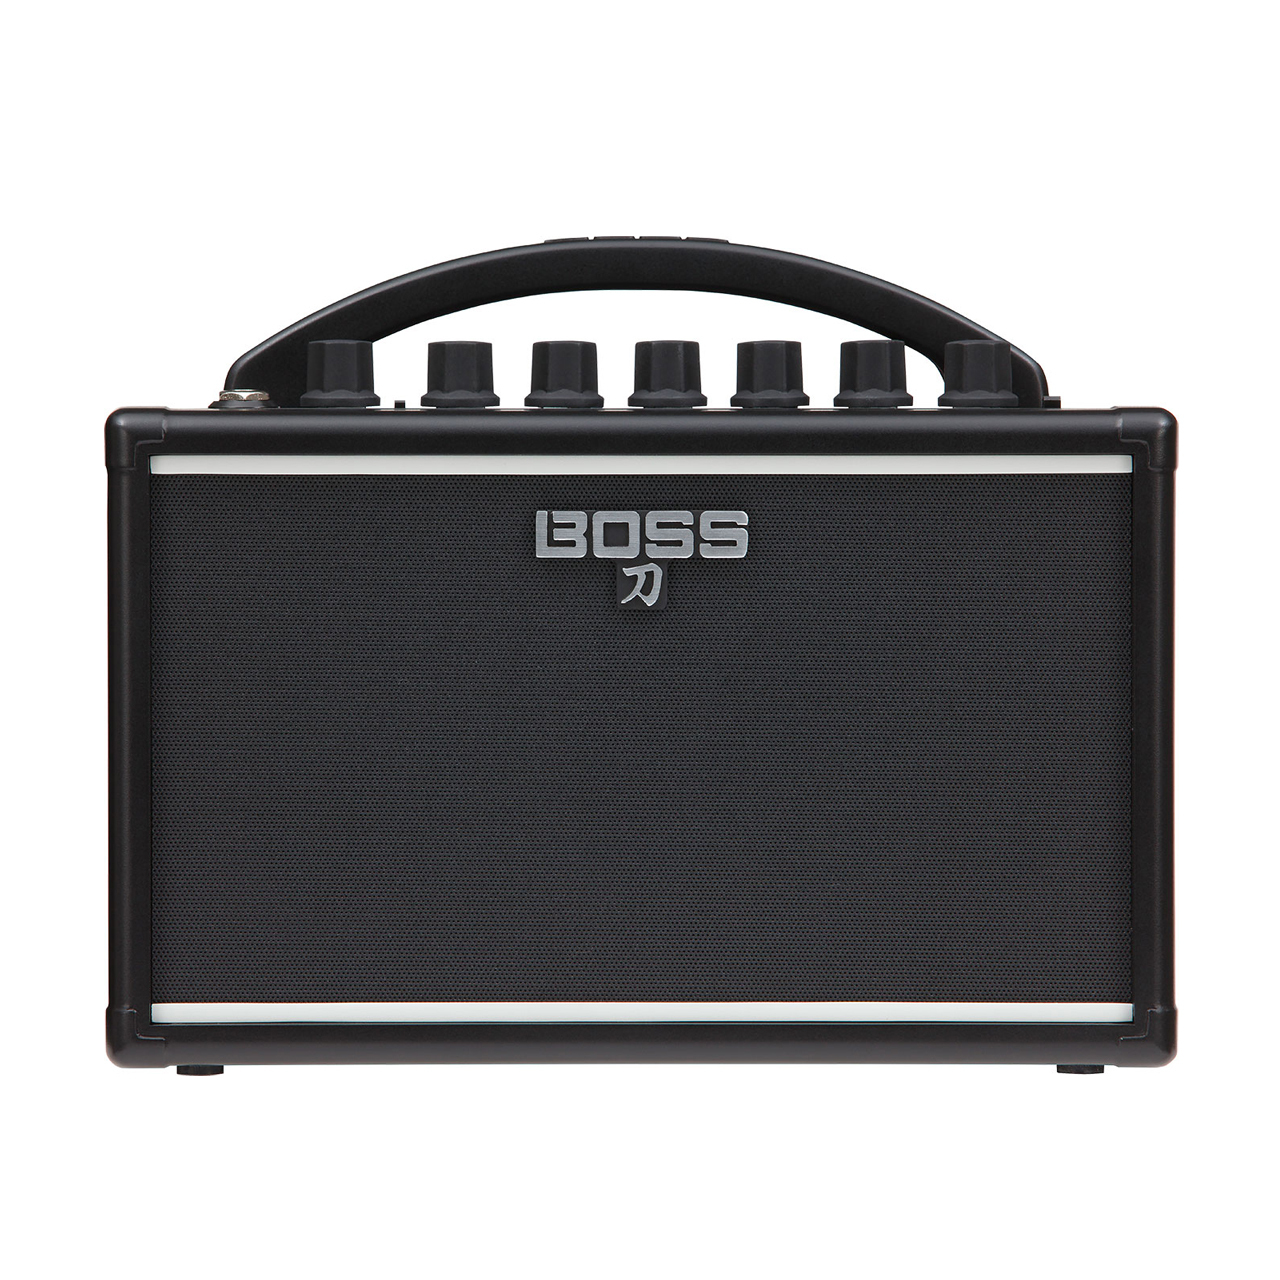 BOSS KATANA MINI KTN-MINI Guitar Amplifier